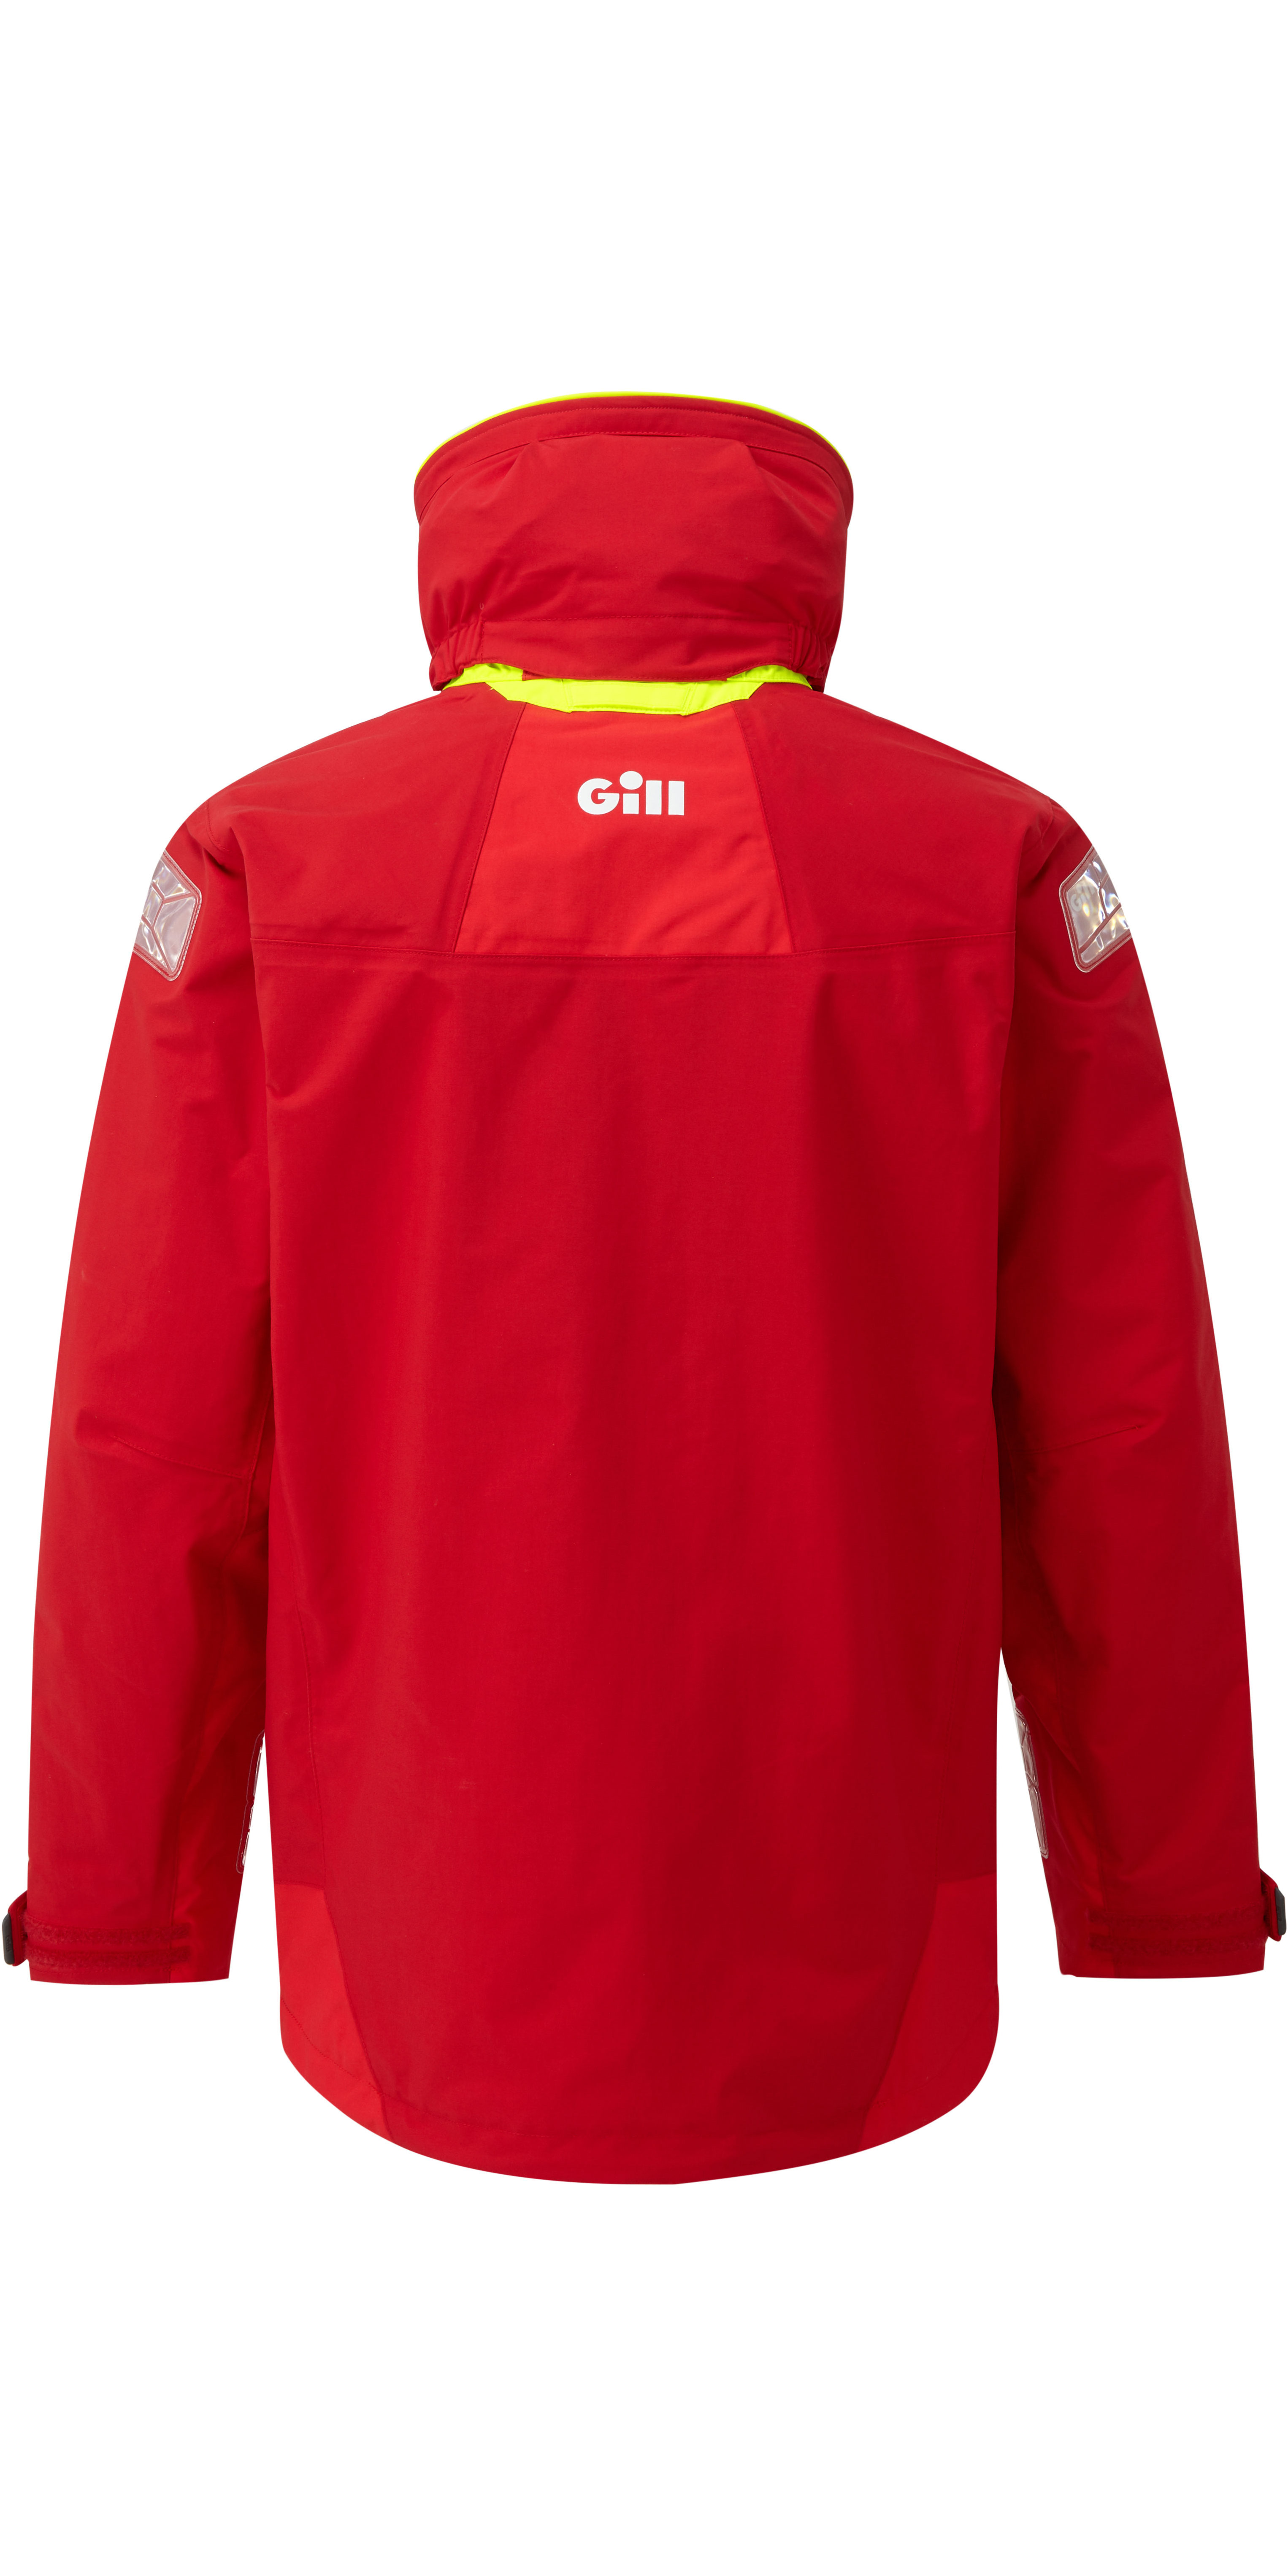 2020 Gill OS2 Mens Offshore Jacket Red OS24J